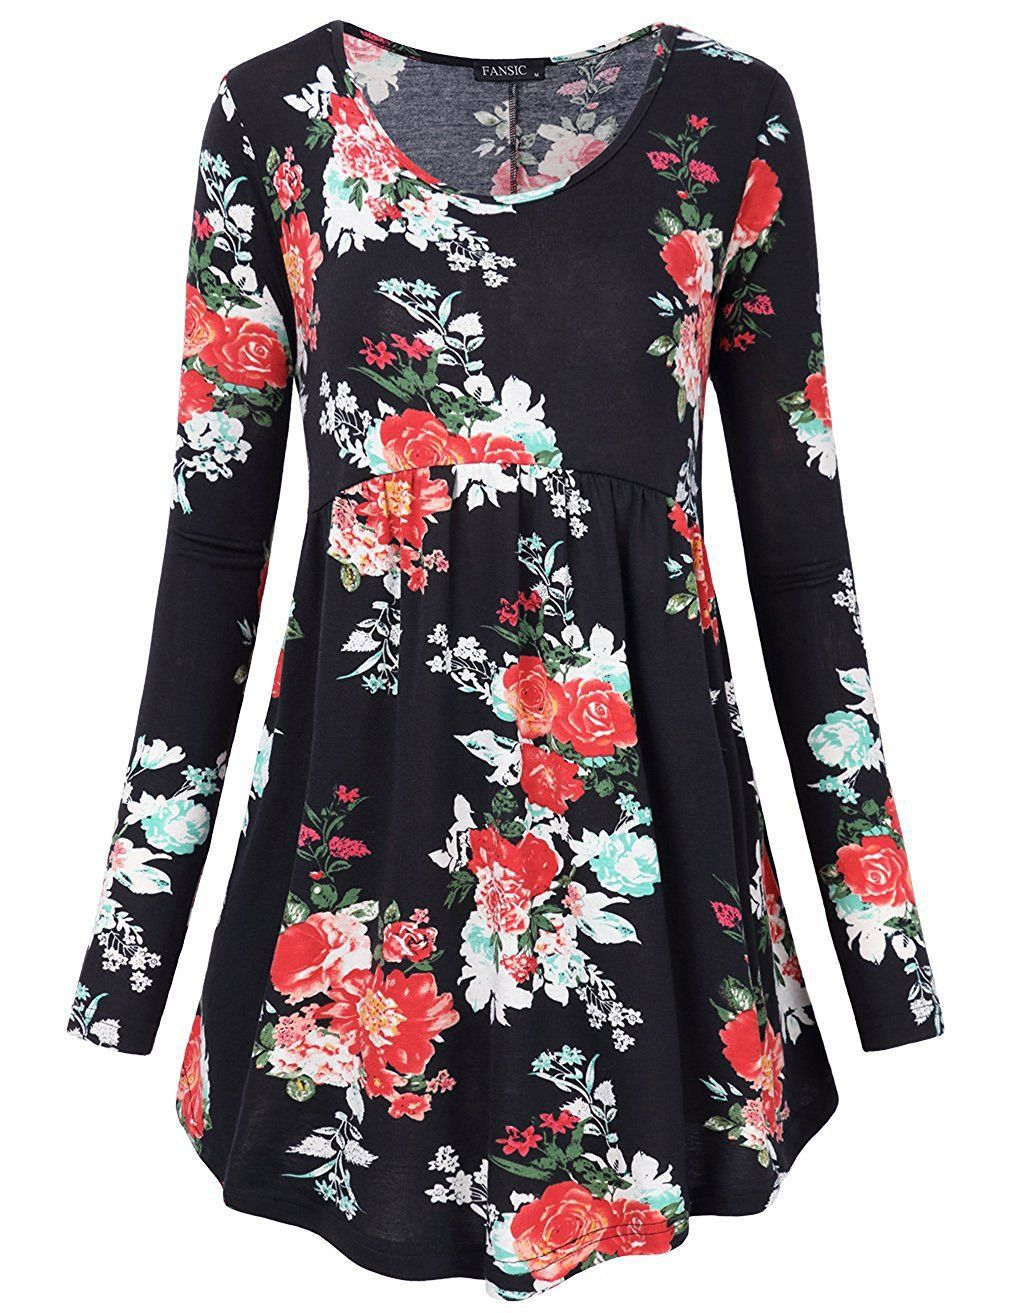 b1015acac21 FANSIC Women Floral Tops,Long Sleeve Empire Waist A Line Flowy Tunics  Blouses